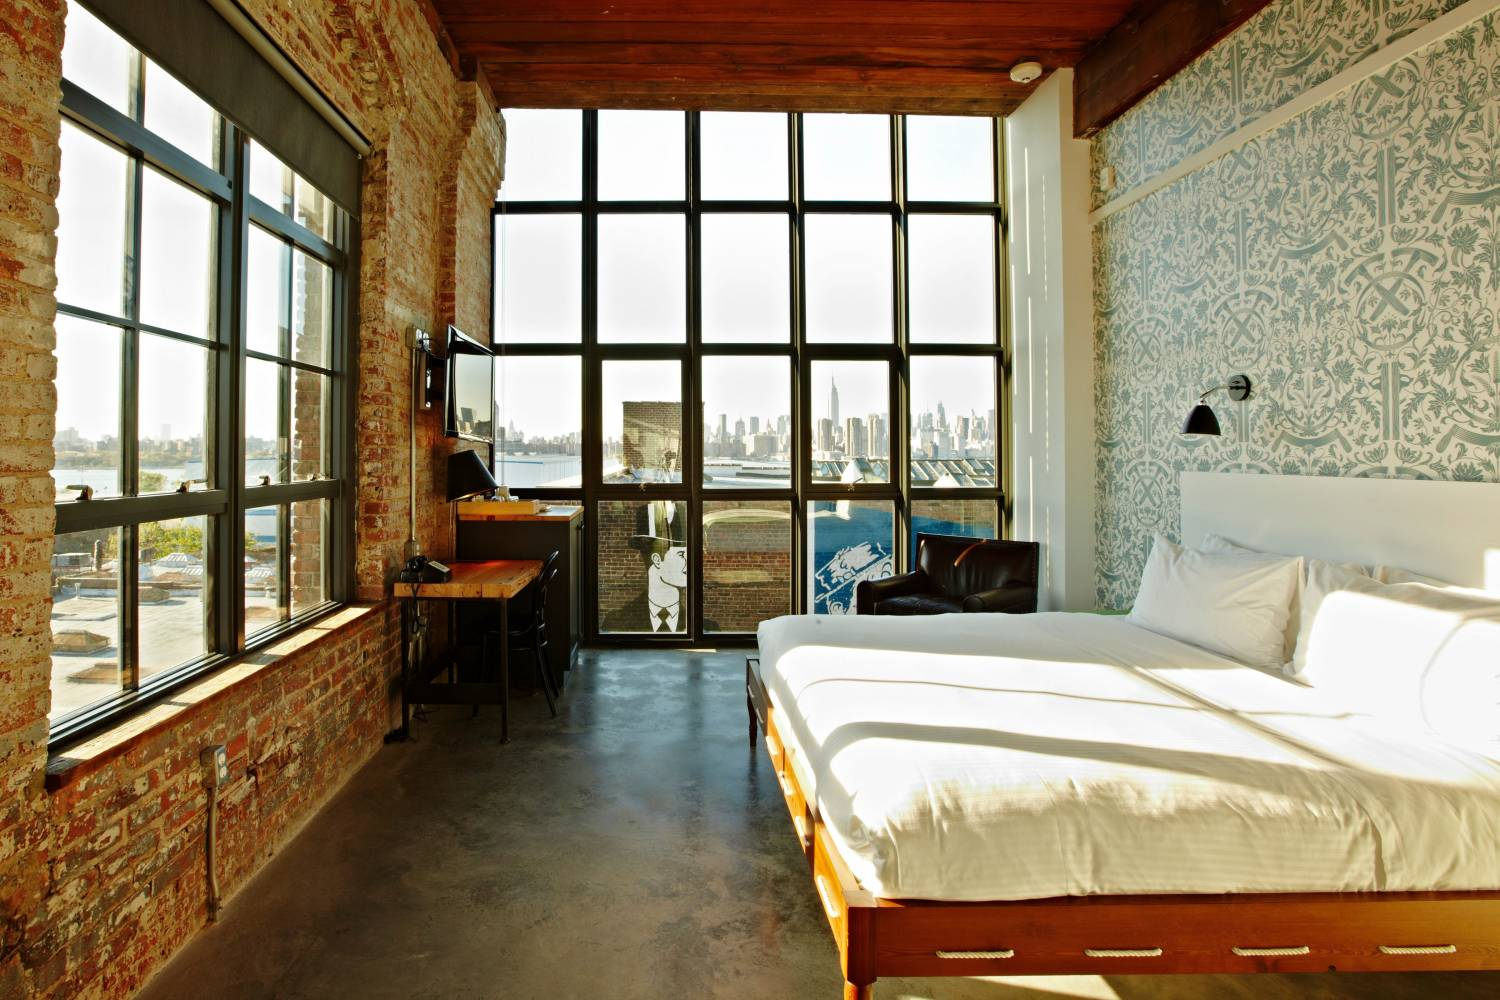 Rooms: NYC Hotel Rooms With A View